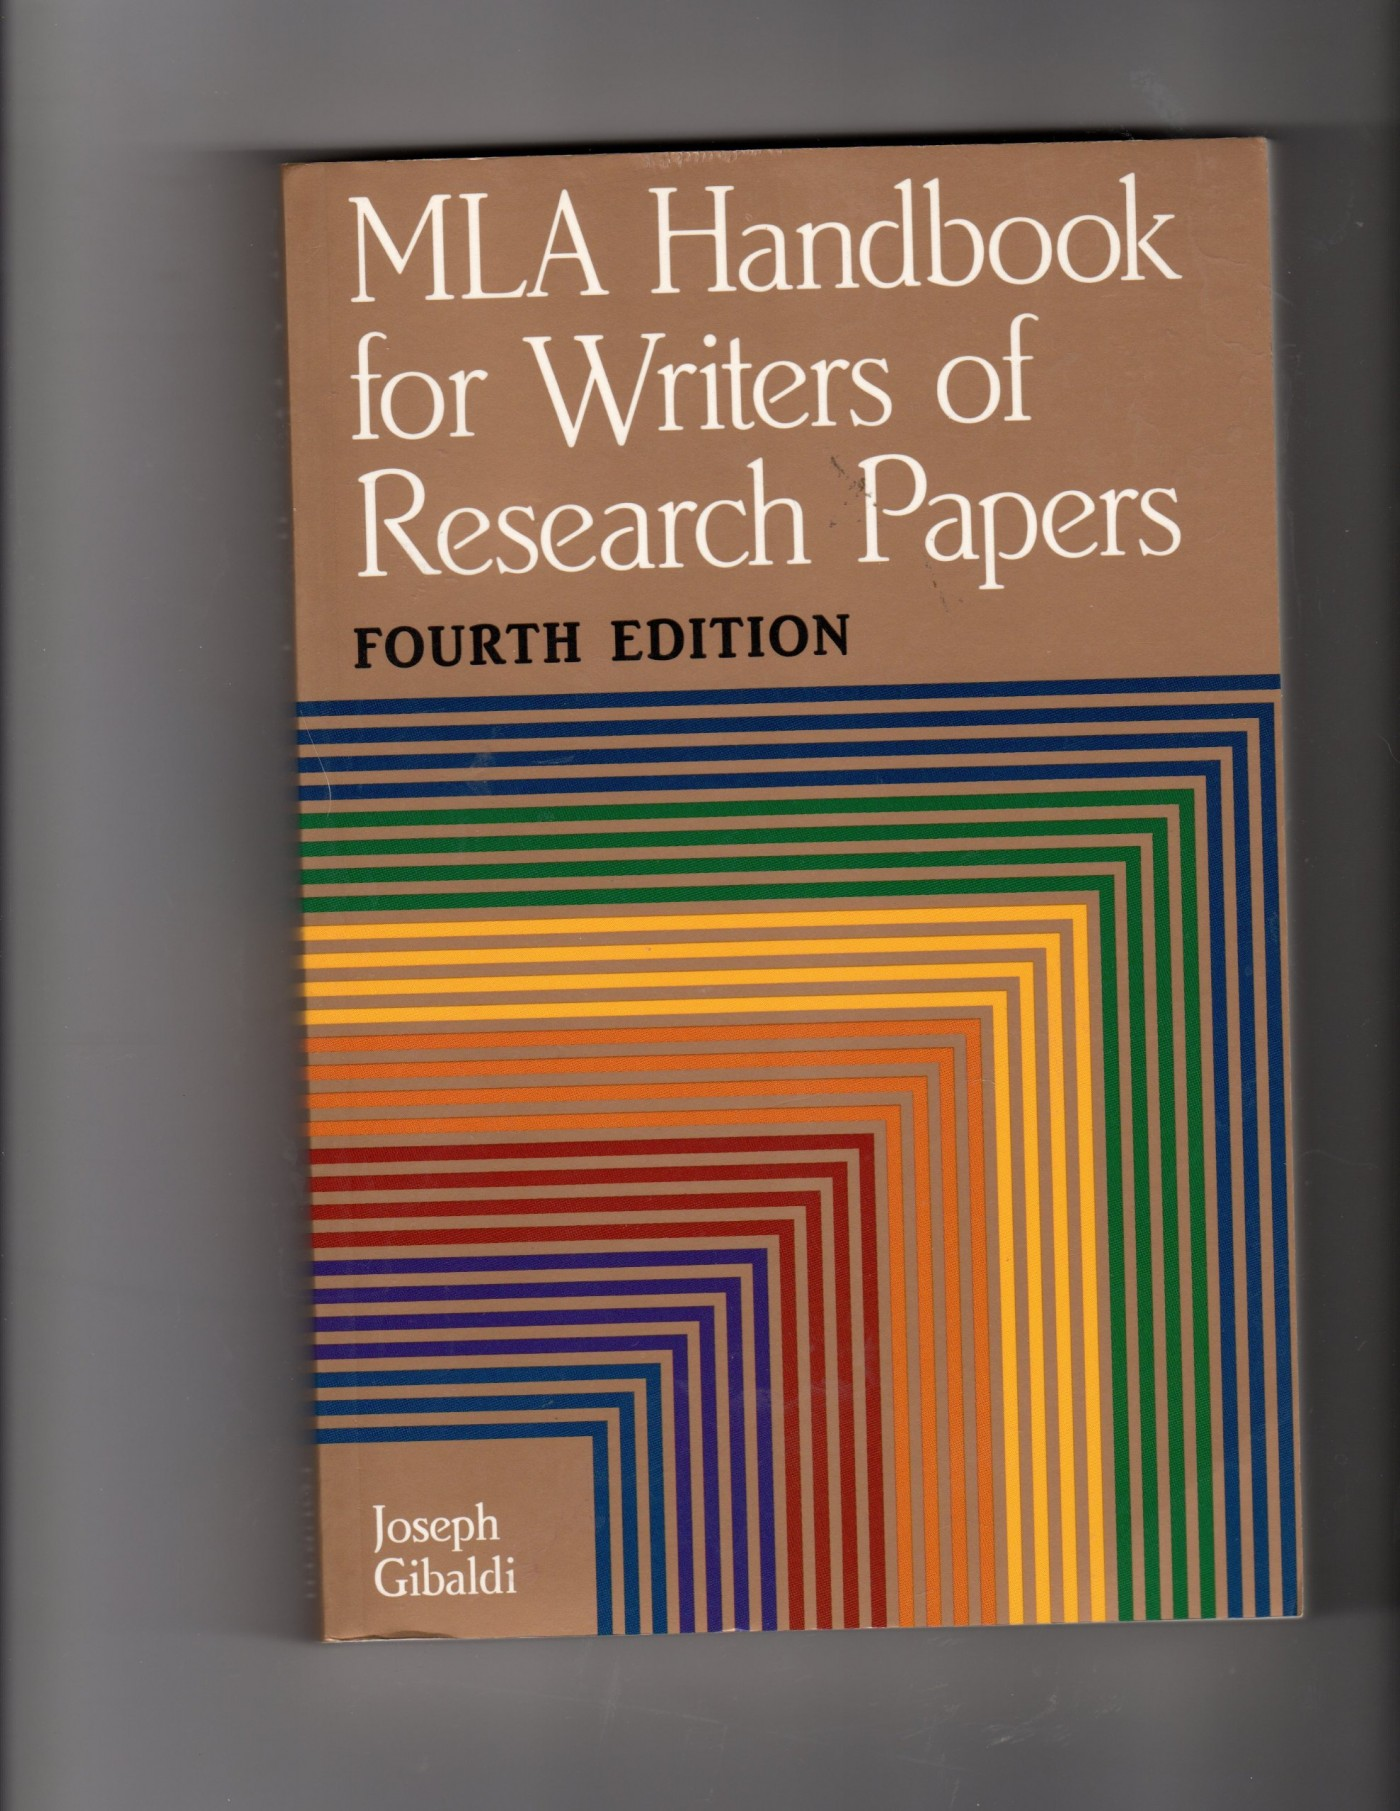 003 91or7esc2gl Research Paper The Mla Handbook For Writers Of Fearsome Papers 8th Edition 7th 2009 (8th Ed.) 1400